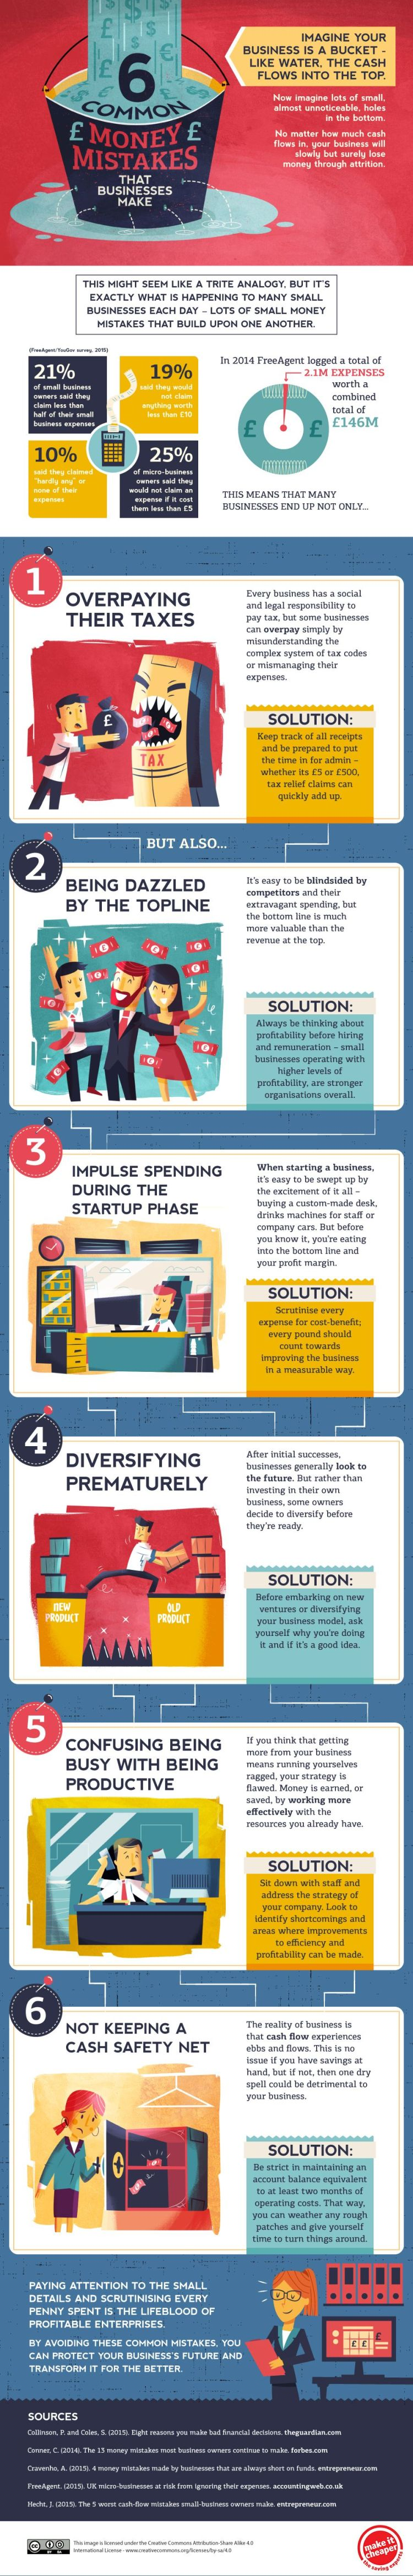 6 Common Money Mistakes Small Business Owners Make #Infographic